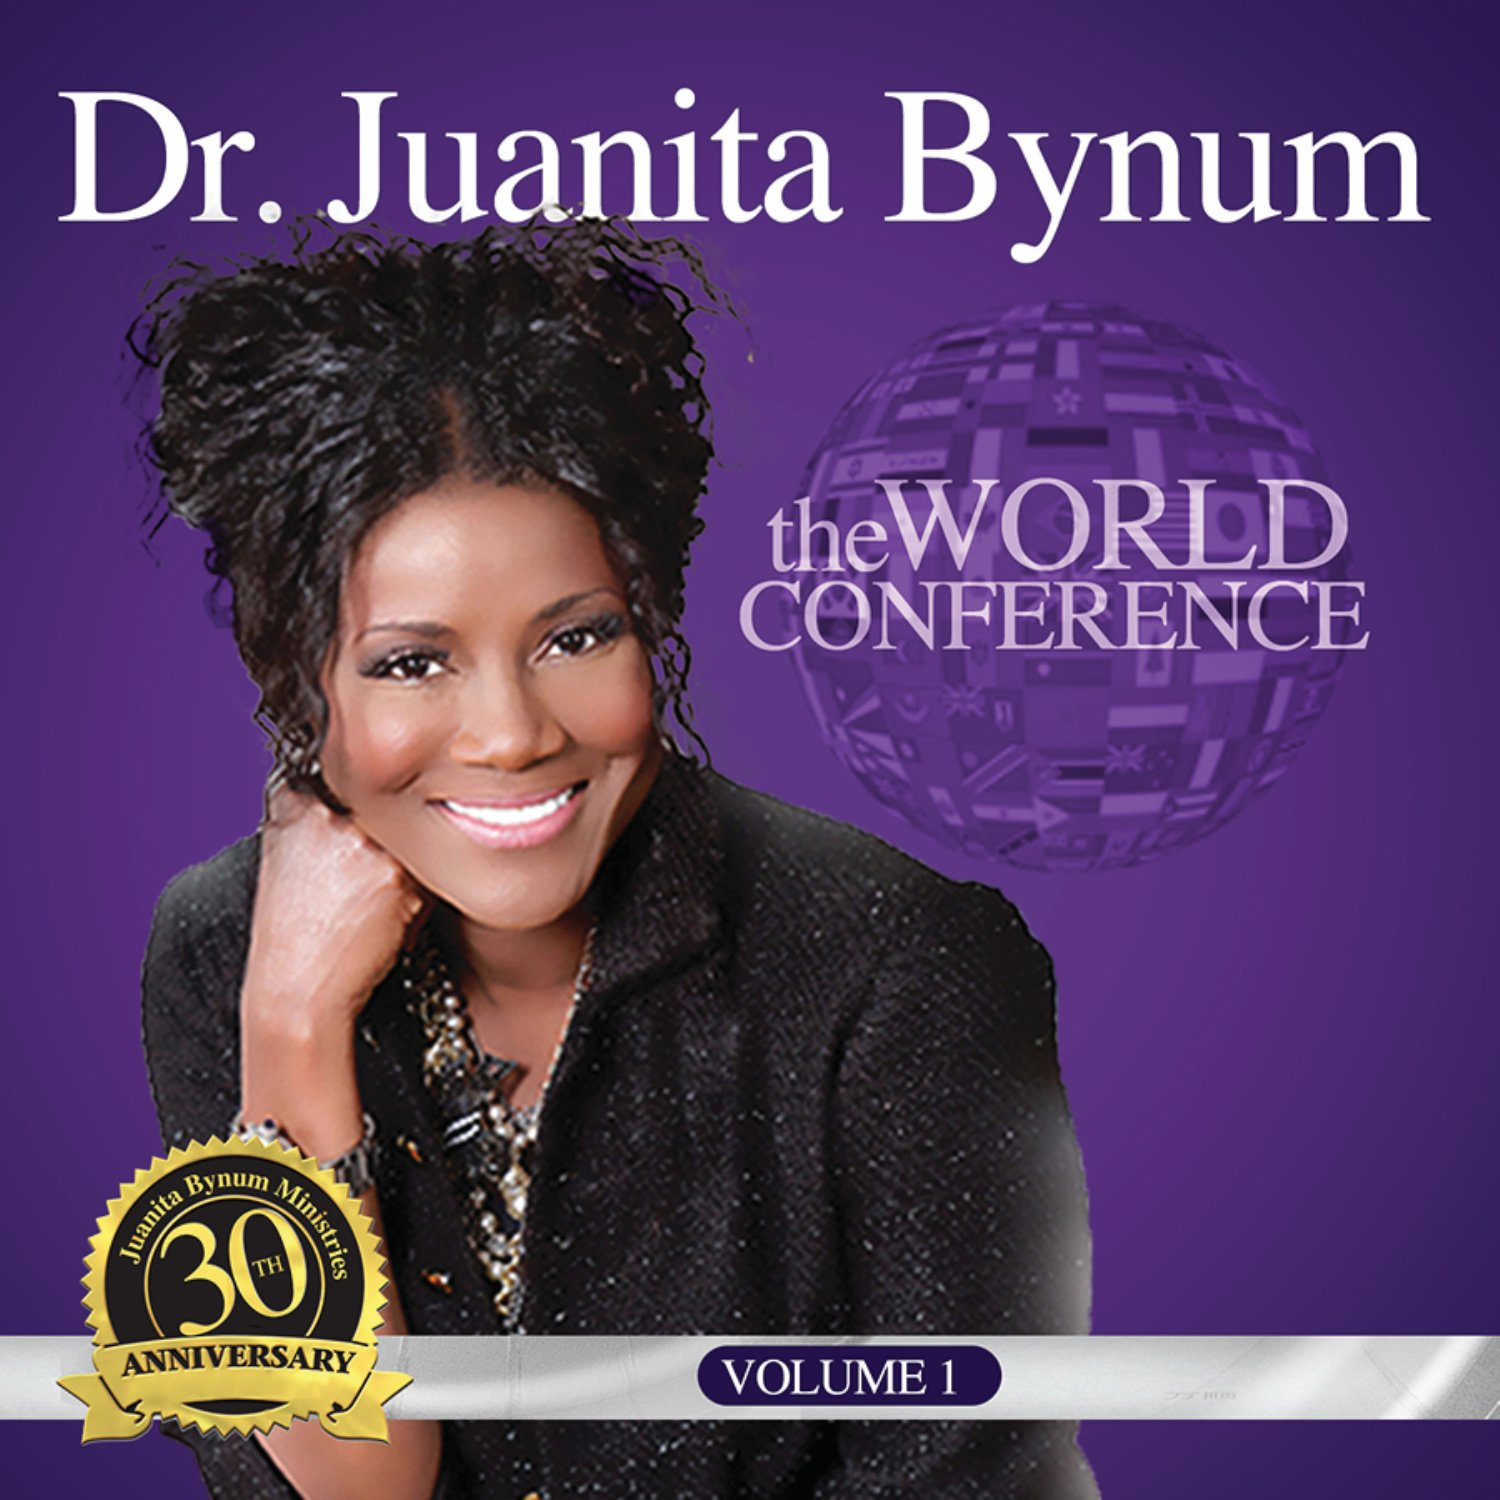 Dr. Juanita Bynum: The World Conference - Volume 1